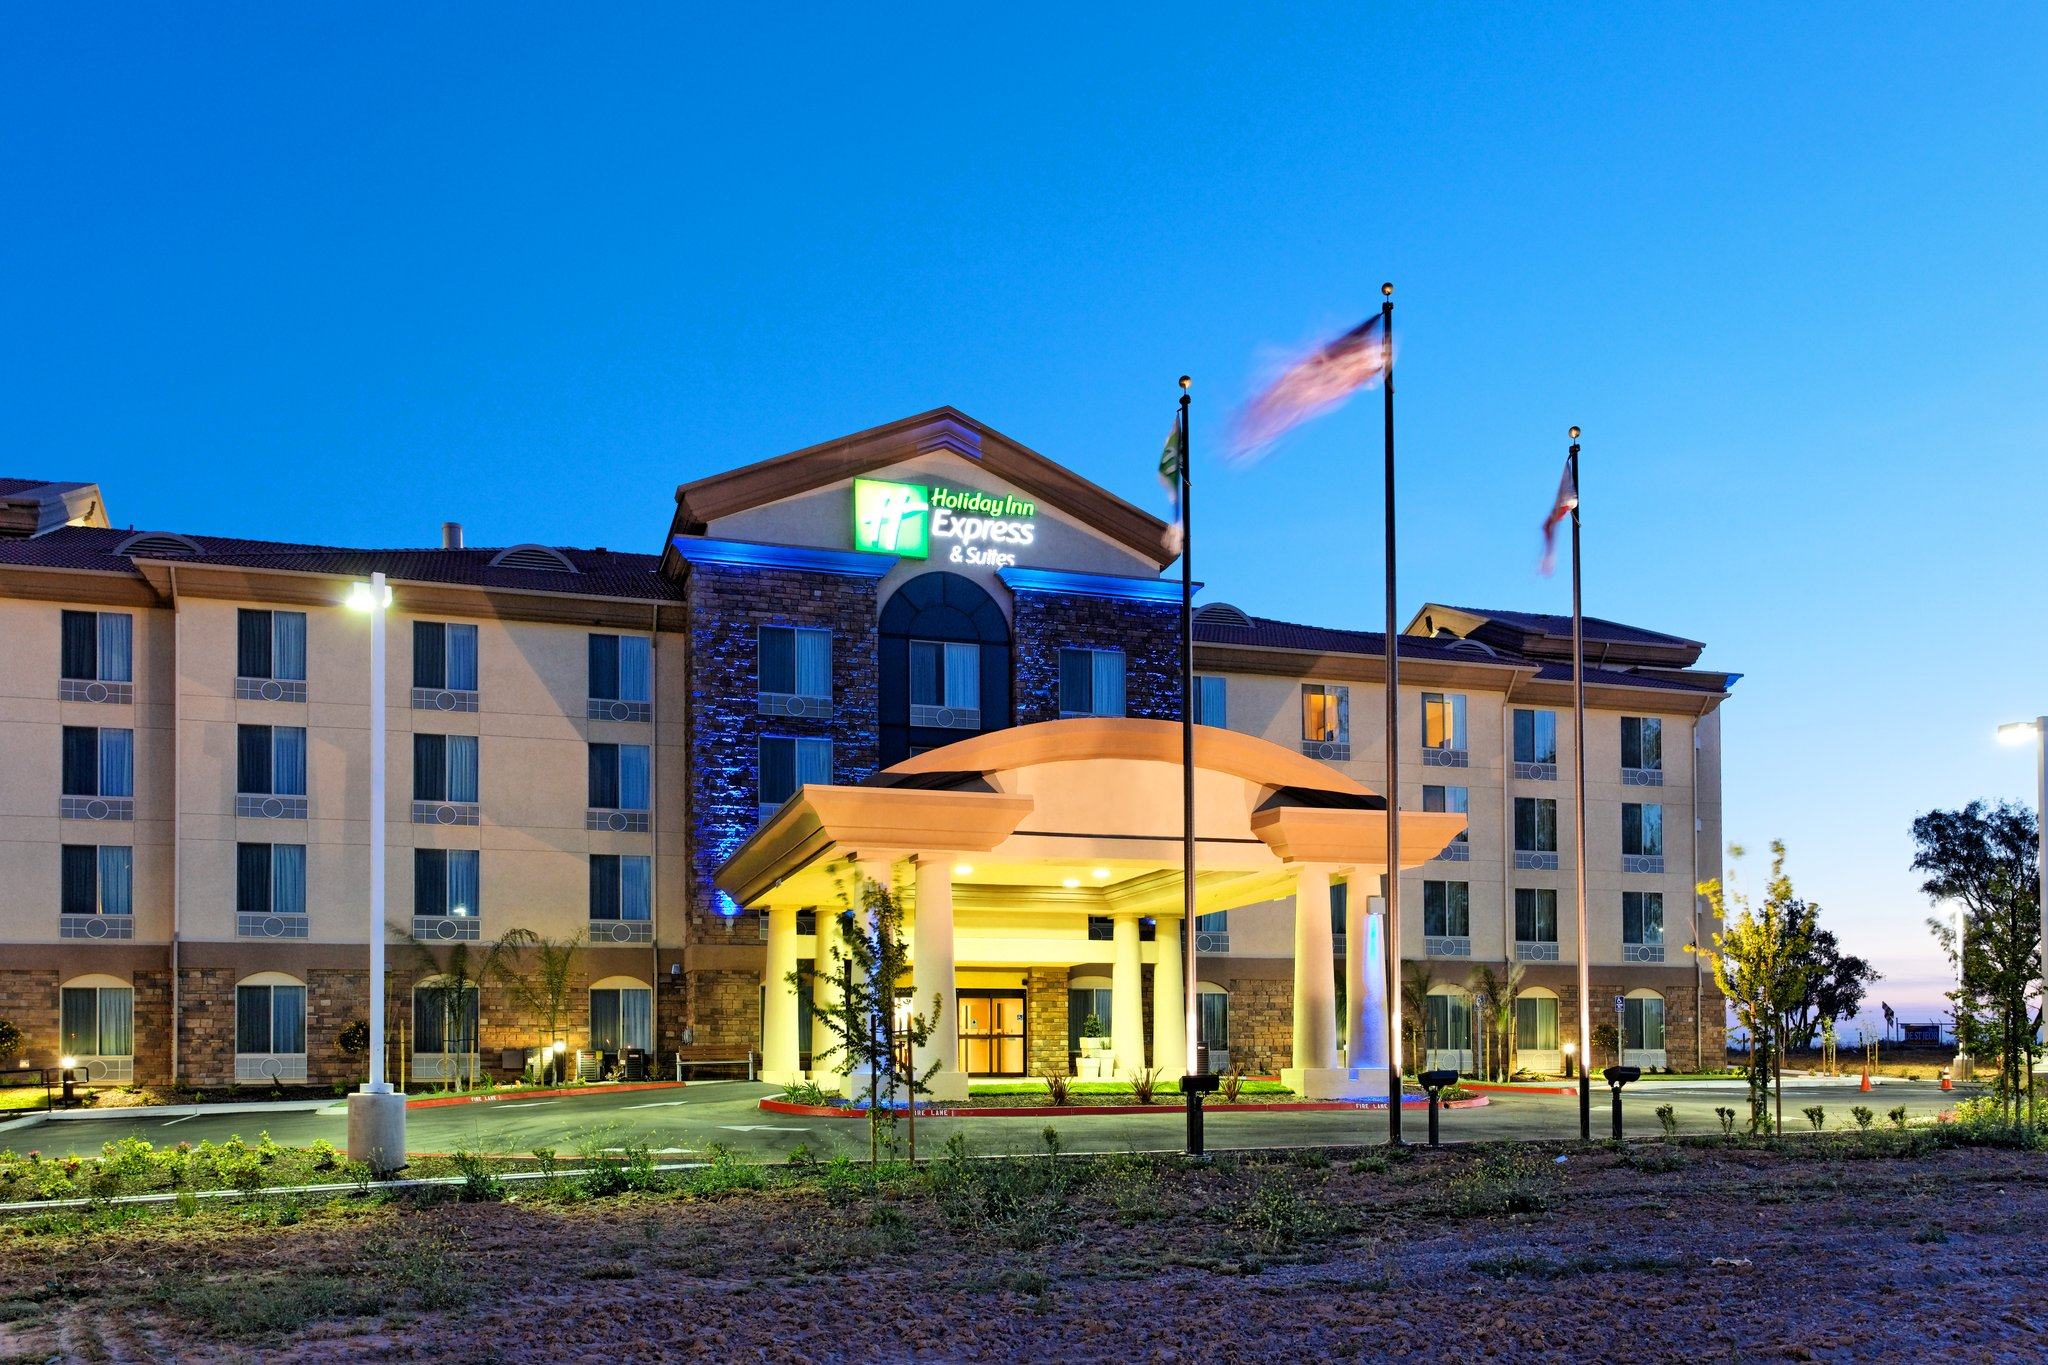 Holiday Inn Express Hotel Fresno NW